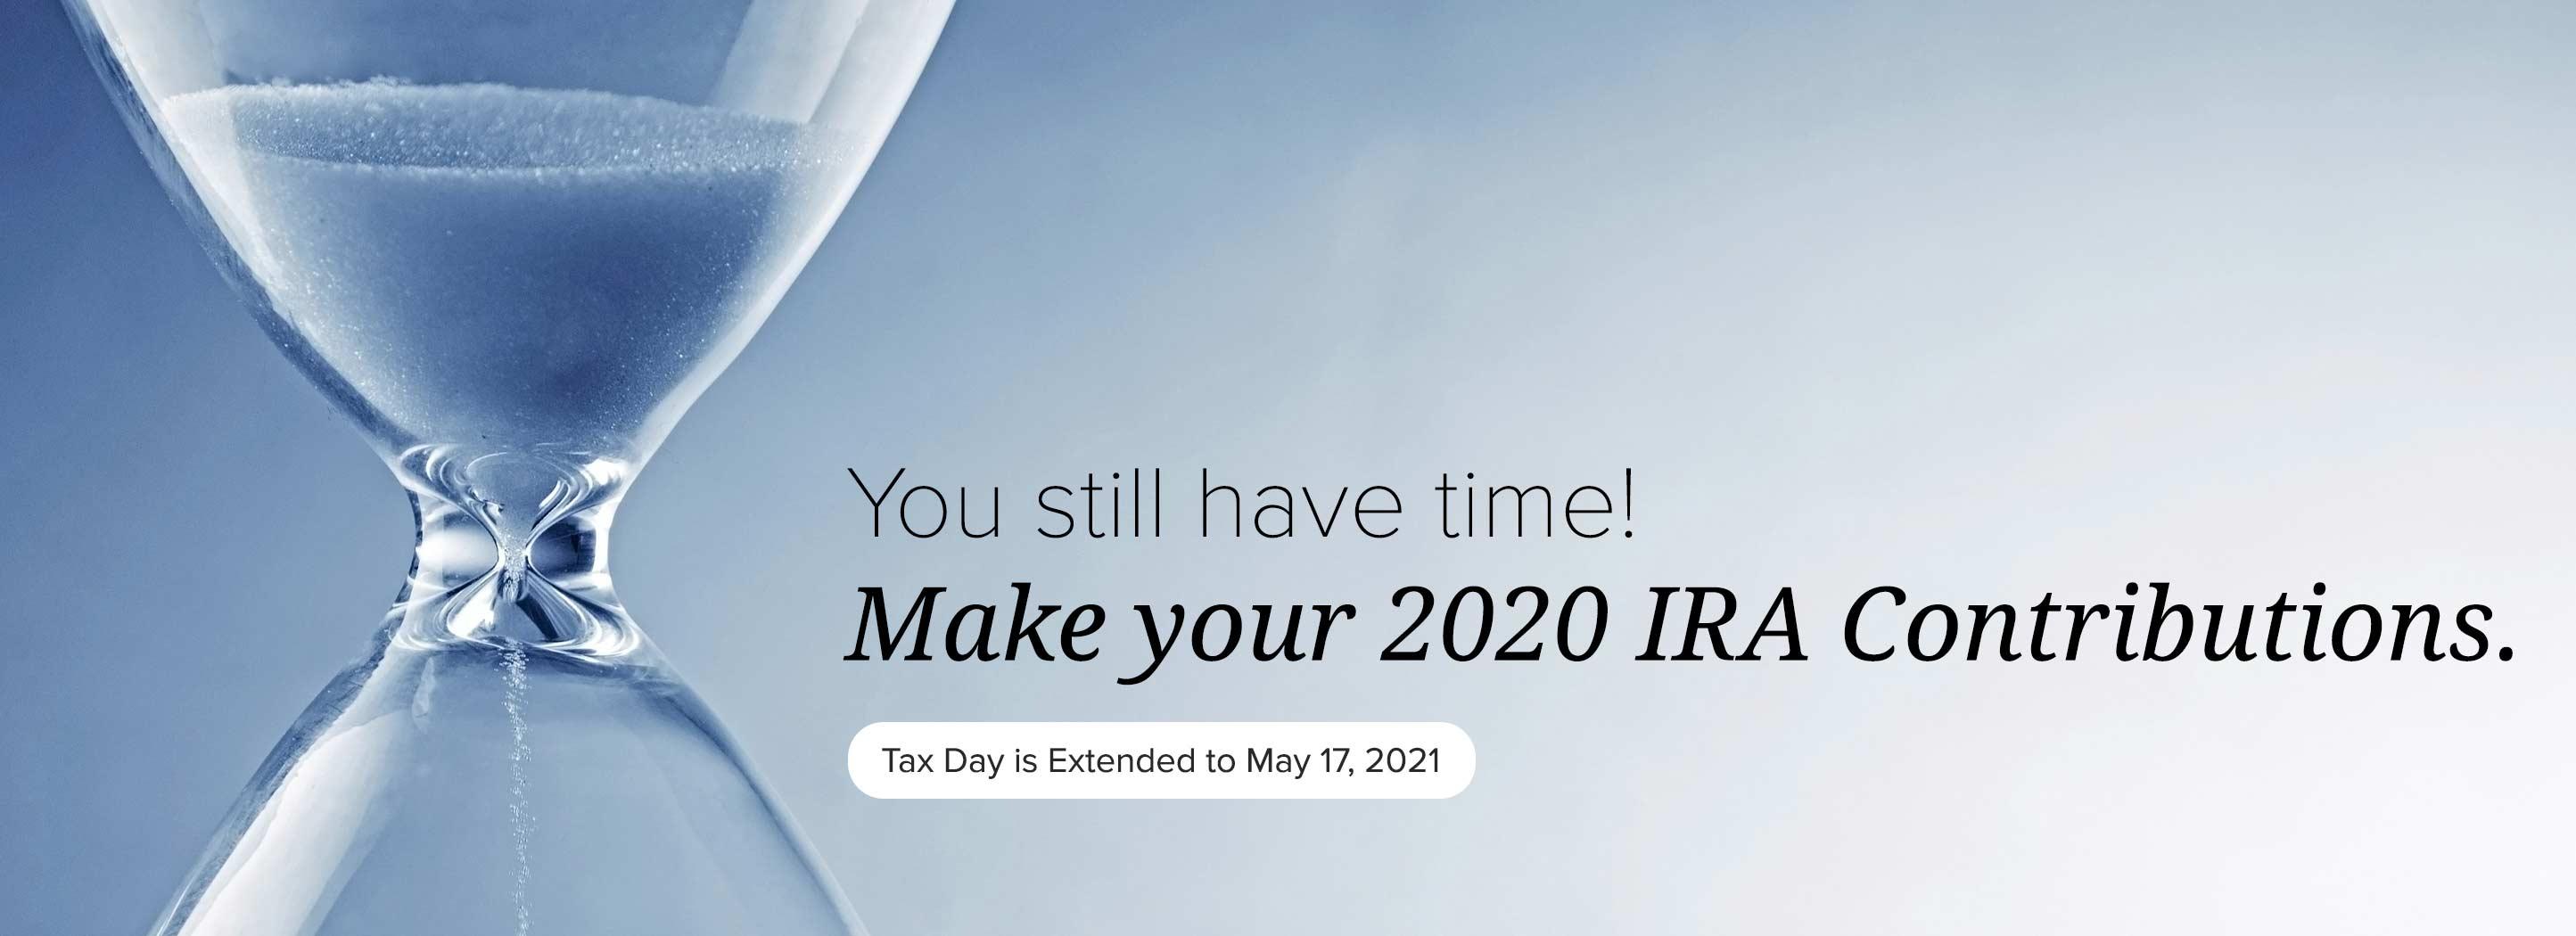 You still have time! Make your 2021 IRA Contributions. Tax Day is April 15, 2021